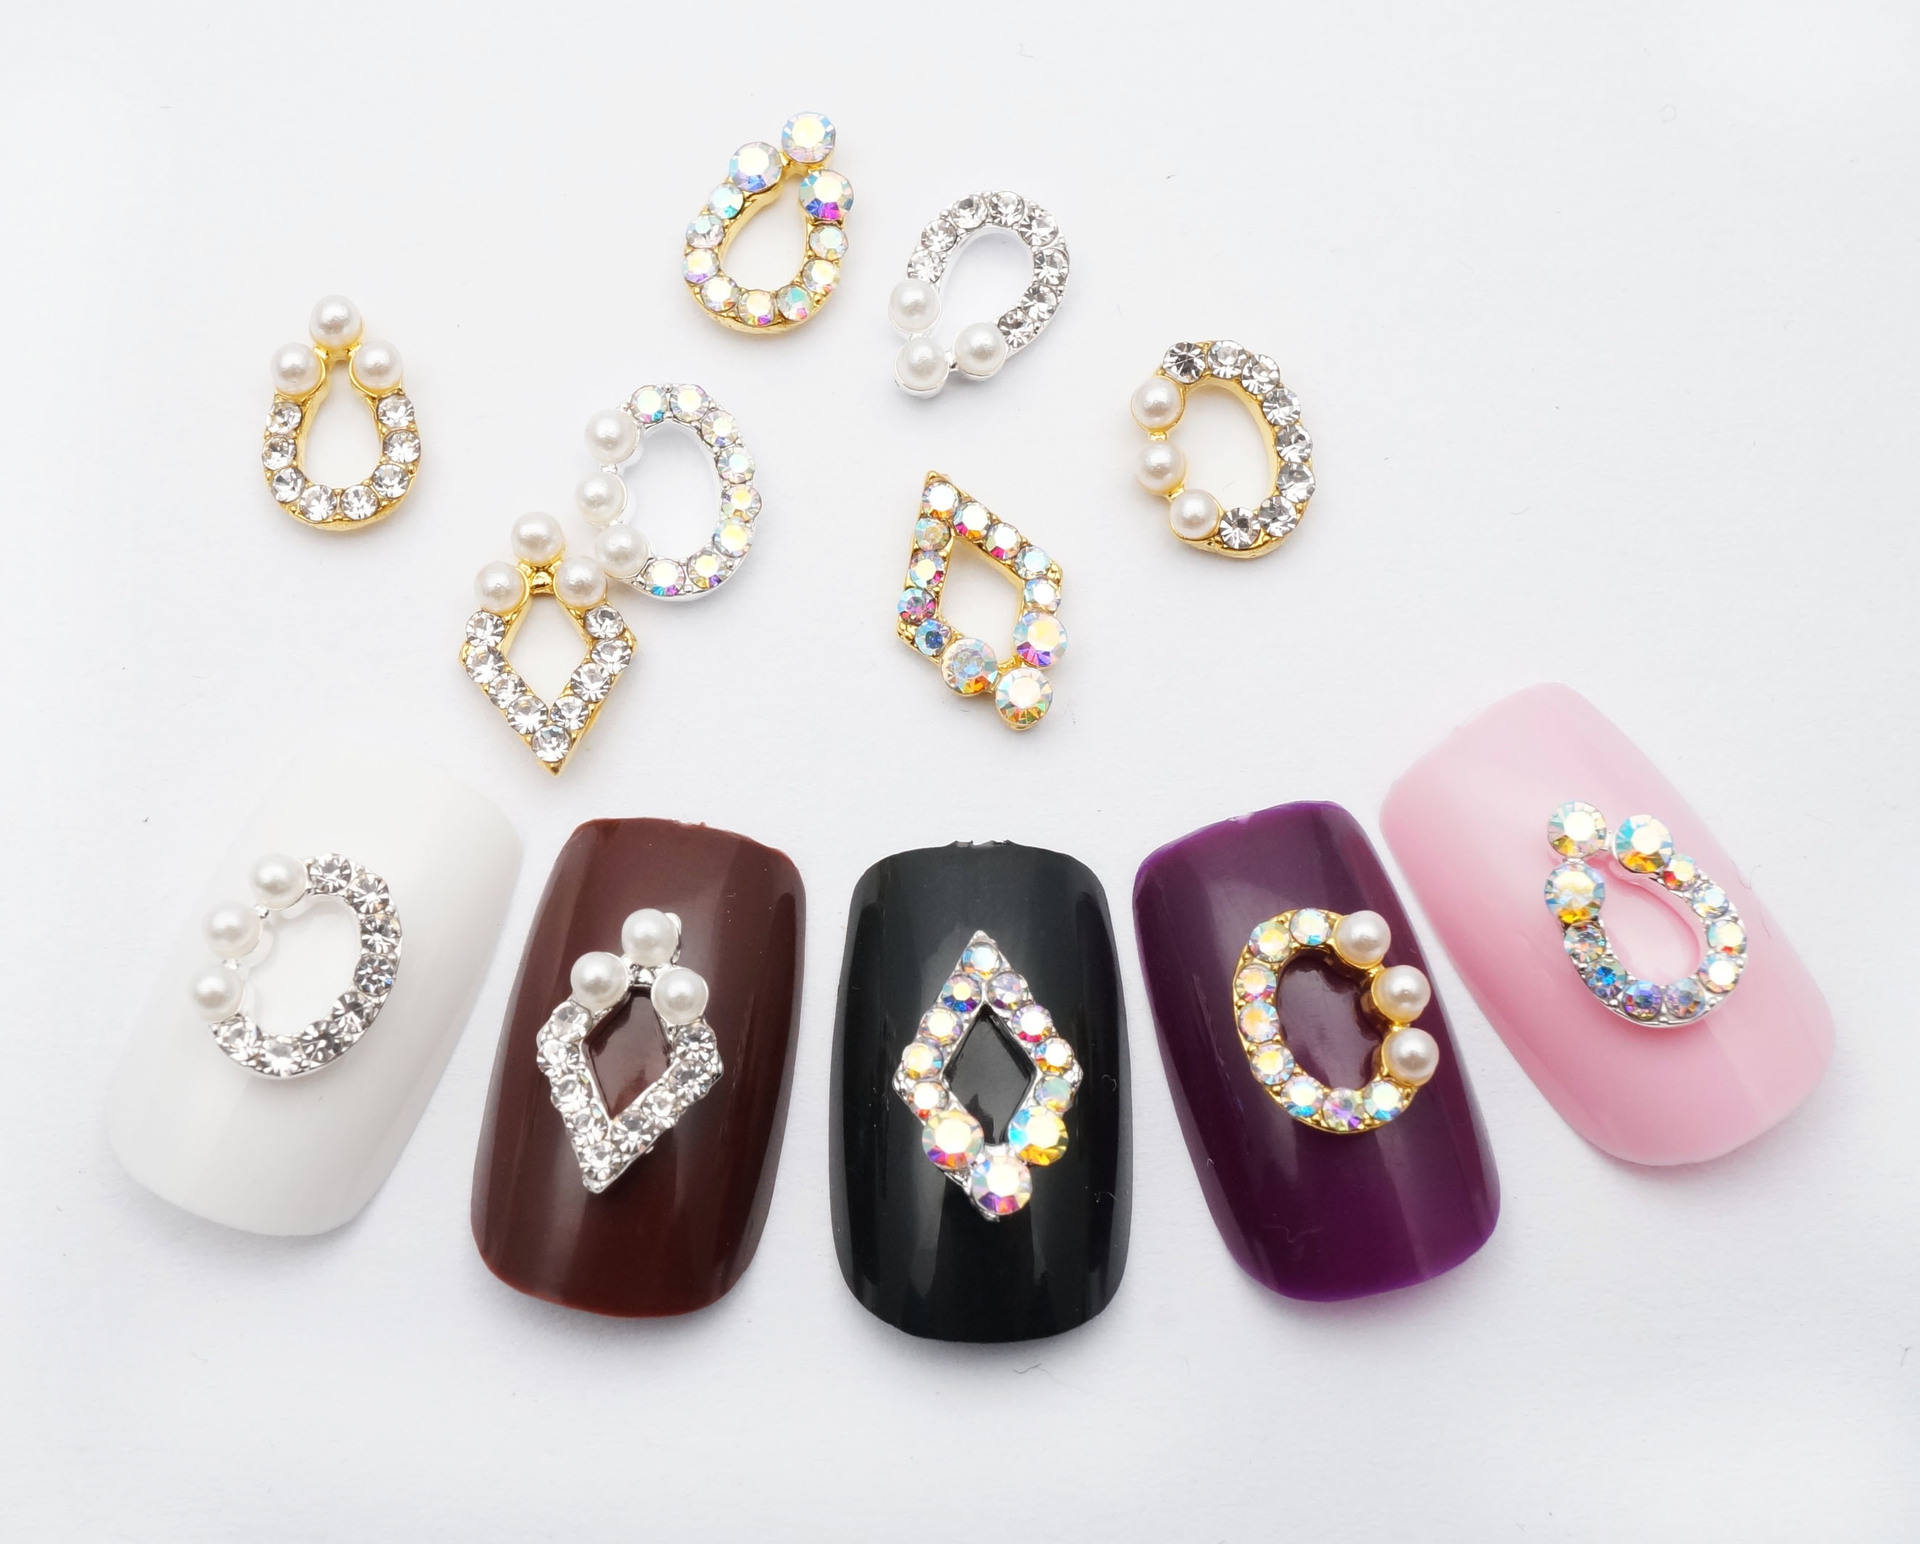 Nail Ornament Manufacturers Direct Selling New Style Japanese-style Ren Qi Kuan Manicure Diamond Nail Sticker Currently Availabl